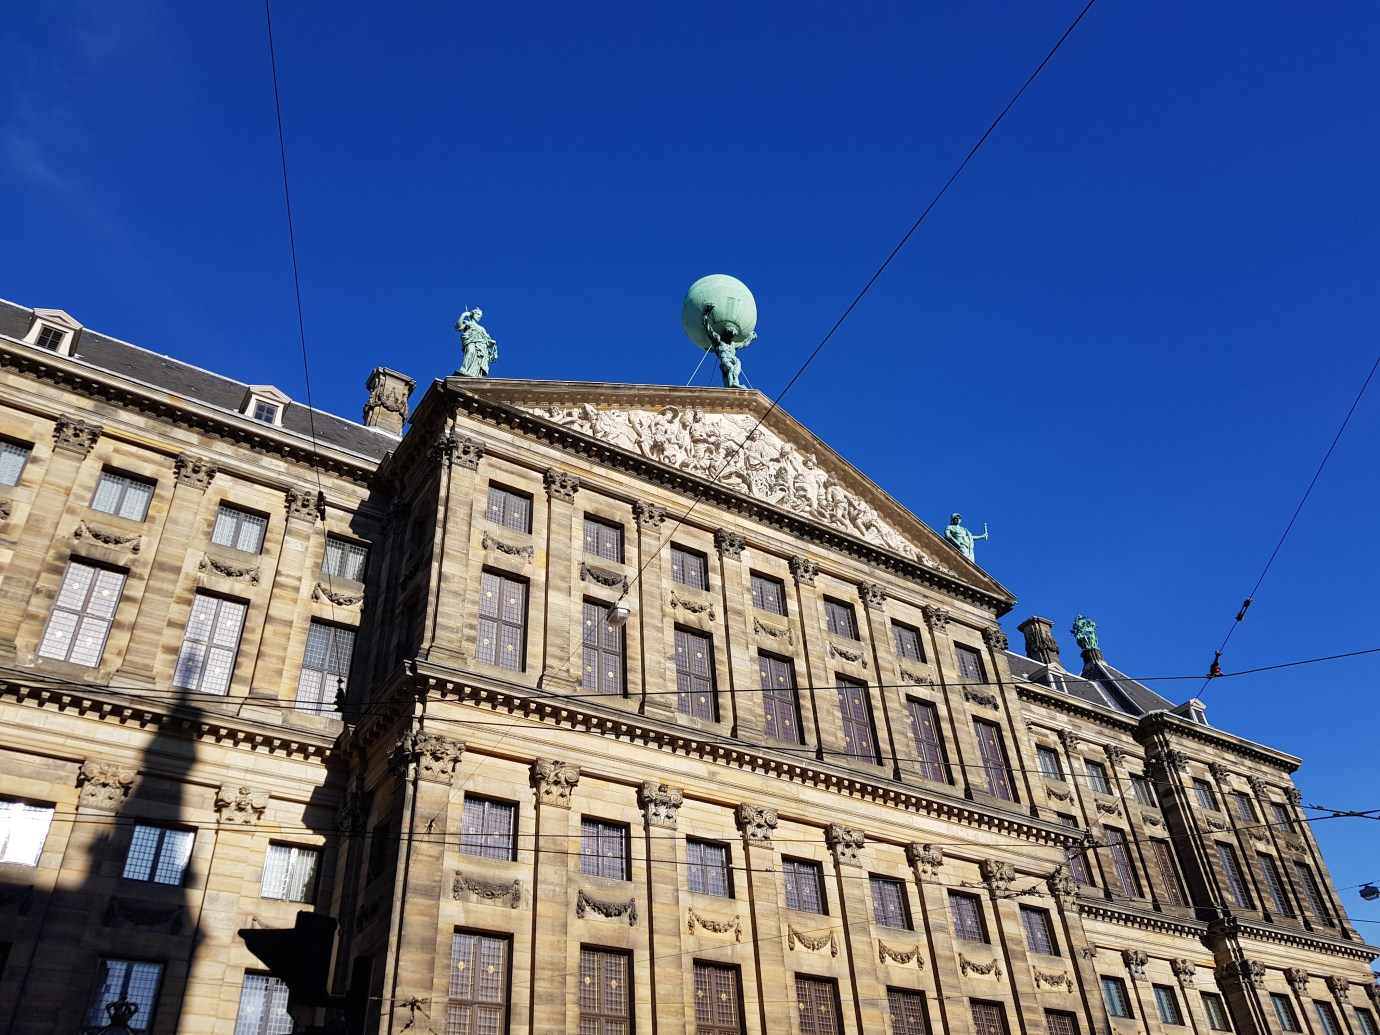 Atlas statue on top of royal palace amsterdam